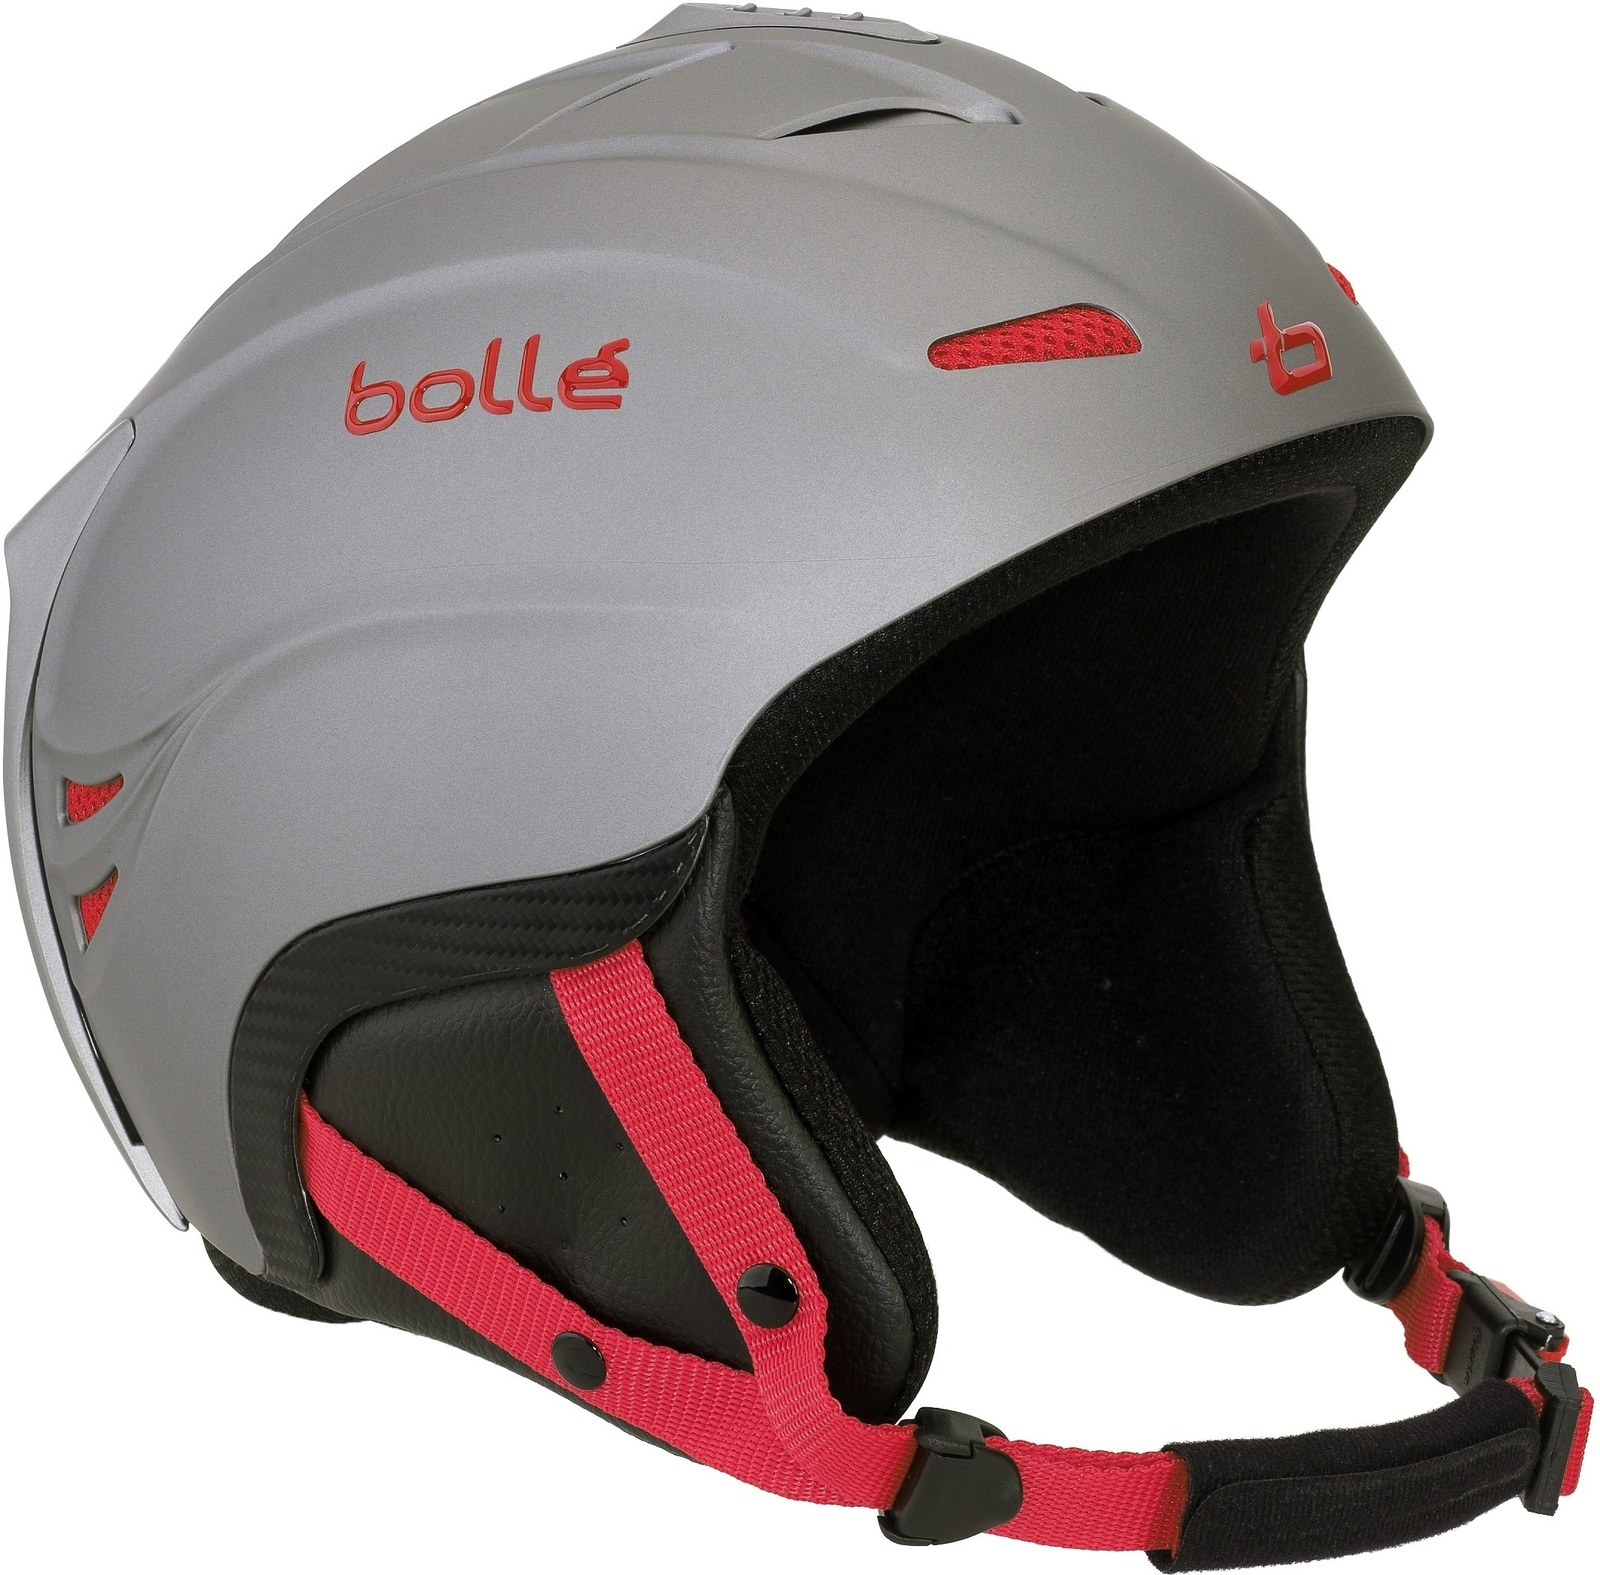 Helma Bollé POWDER Dark Grey Red model 2011/12